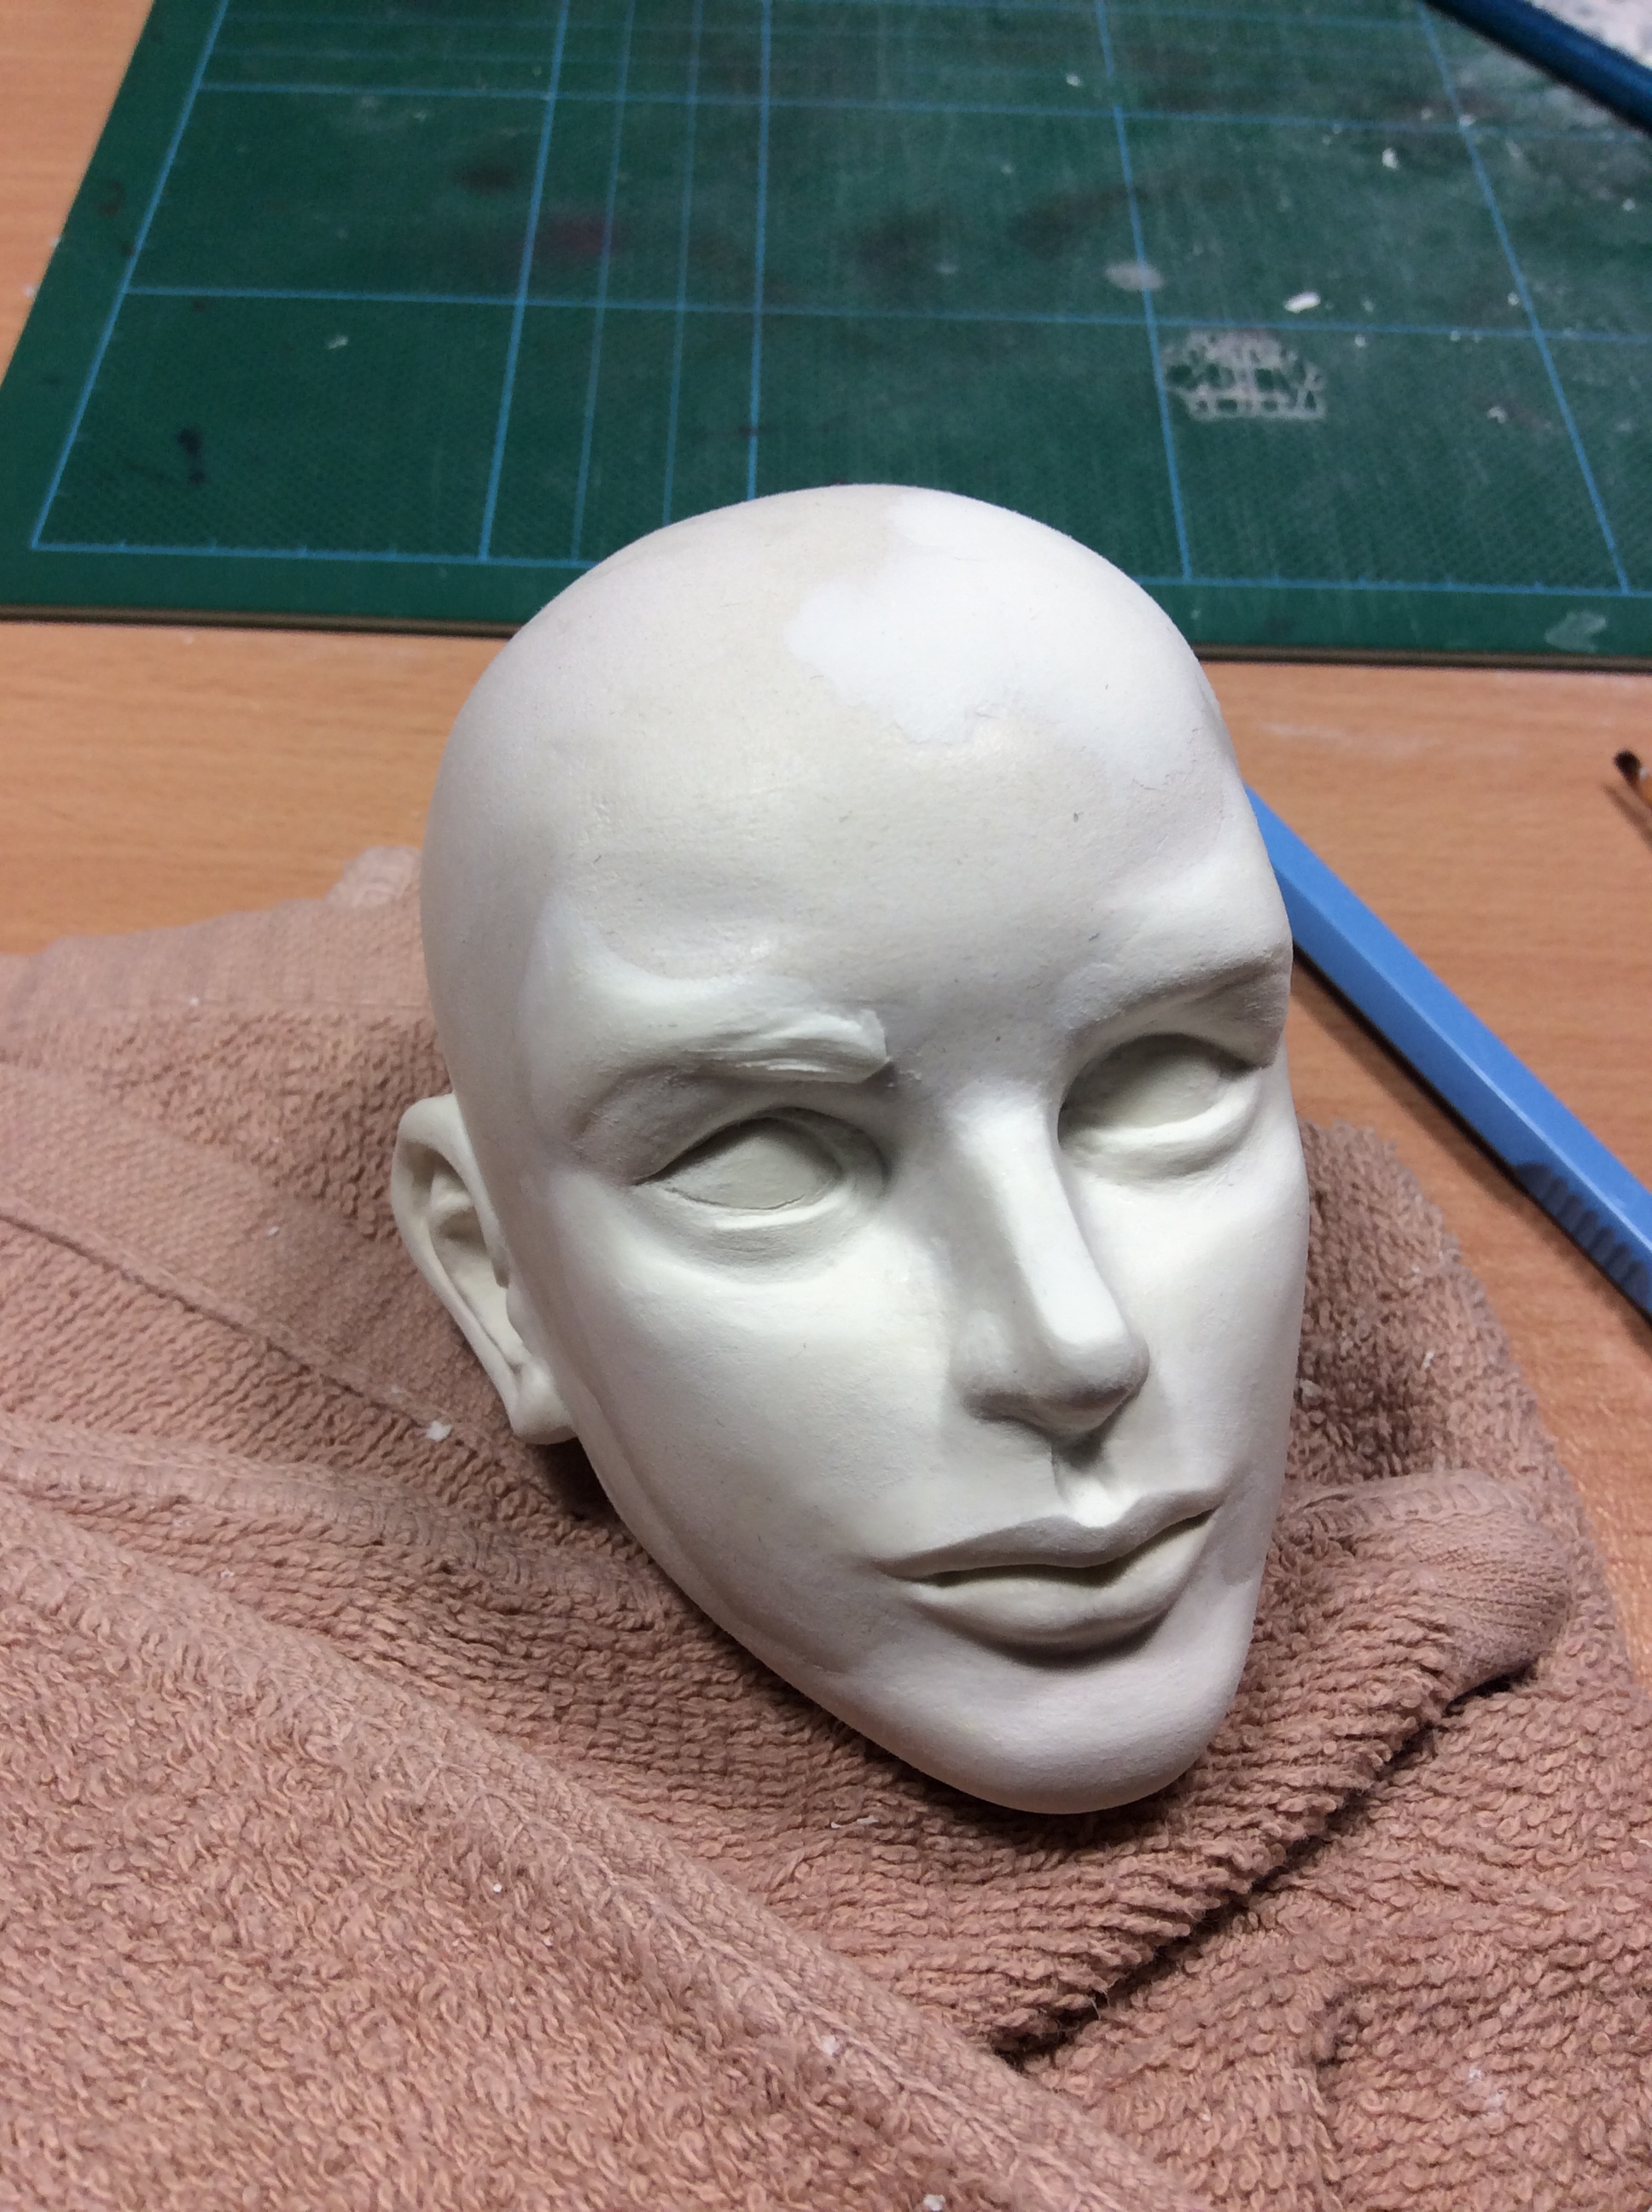 jemse---my-first-doll-head-making-progress-diary-part-3_32293337241_o